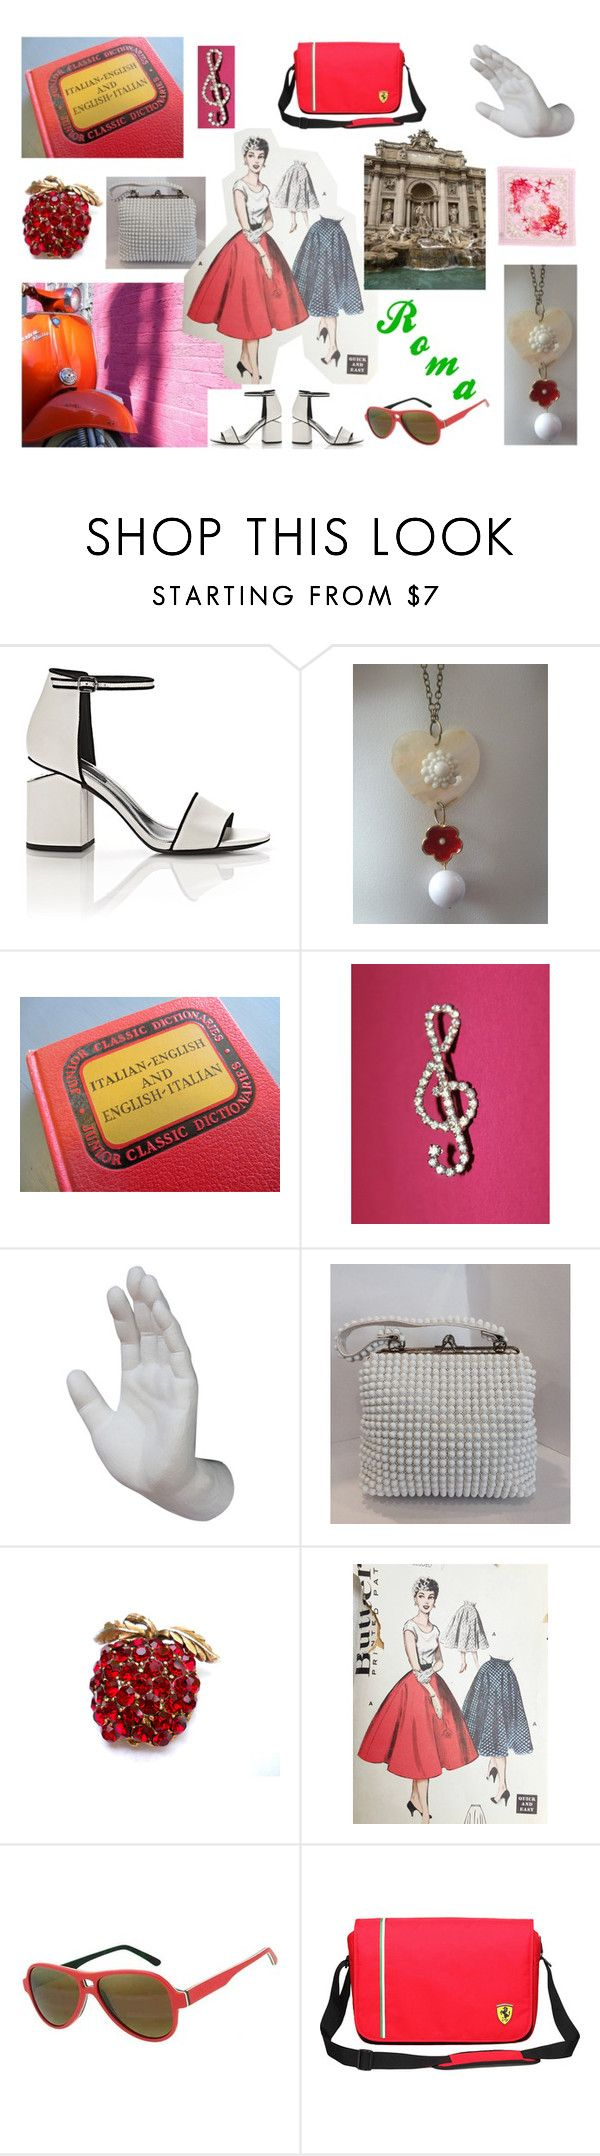 """""""Roman Holiday"""" by troppo-bella-vintage ❤ liked on Polyvore featuring Alexander Wang, Interior Illusions Plus, Italia Independent, Versace and vintage"""